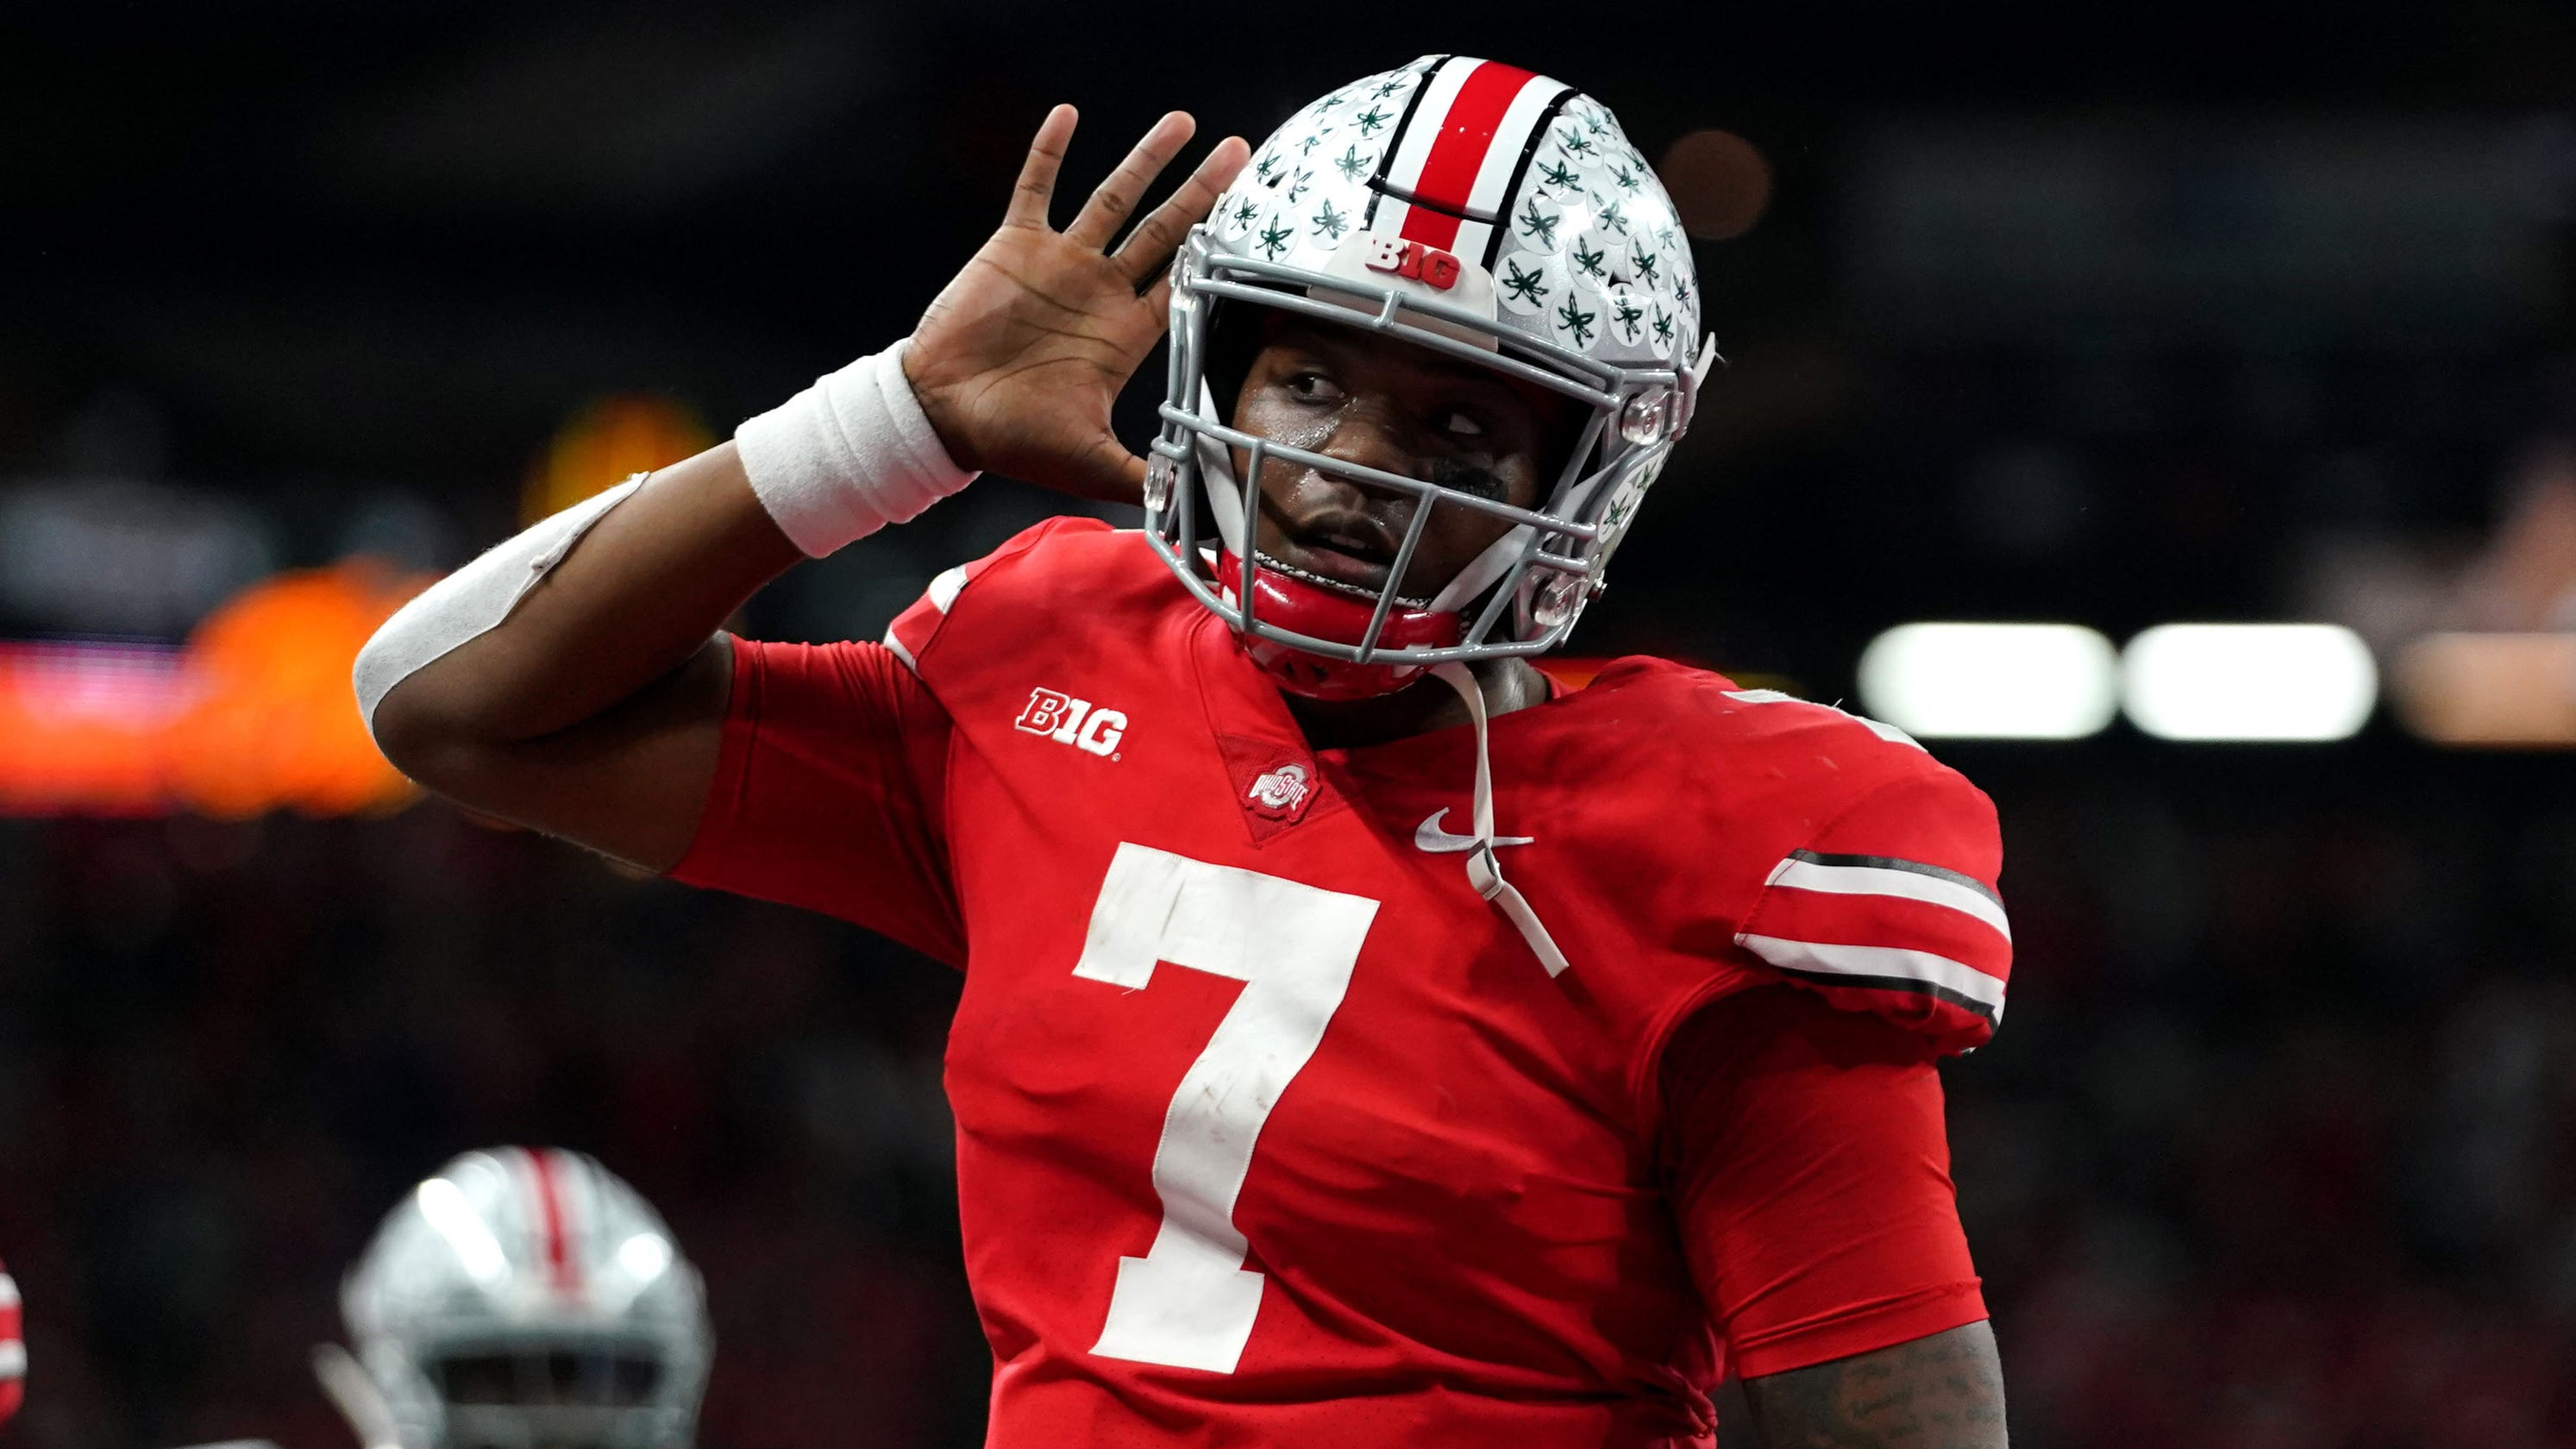 reputable site a5069 0bfcf NY Giants 7-round mock draft: Are QBs Haskins, Kyler Murray ...